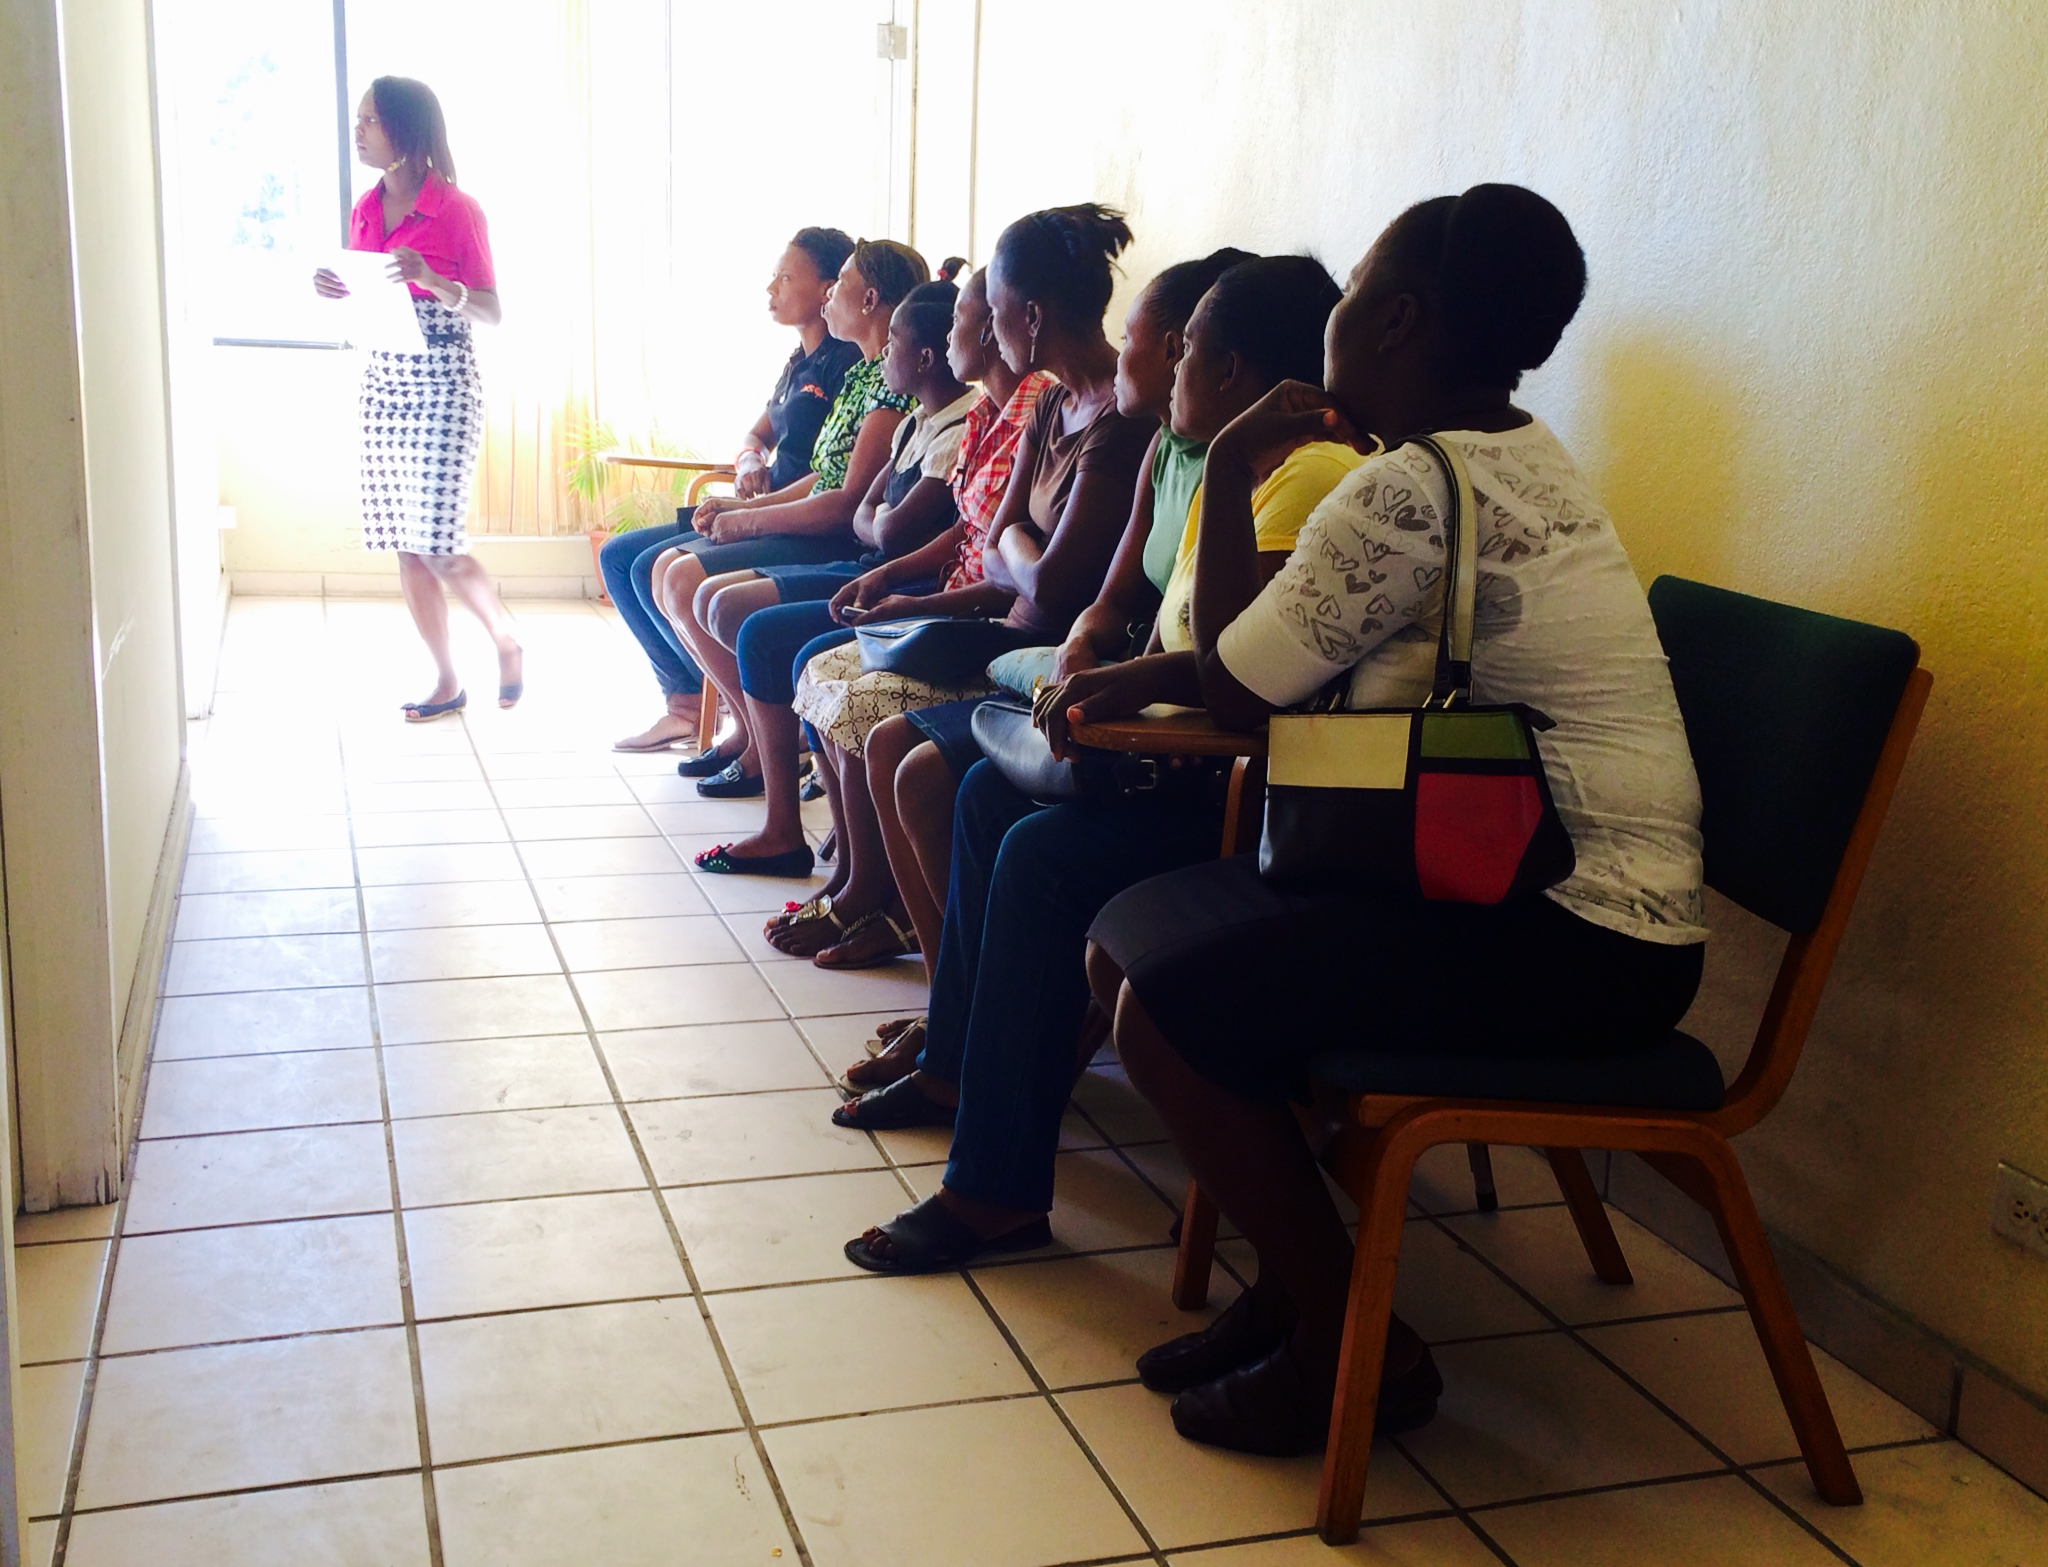 Women waiting patiently for their screening ultrasound